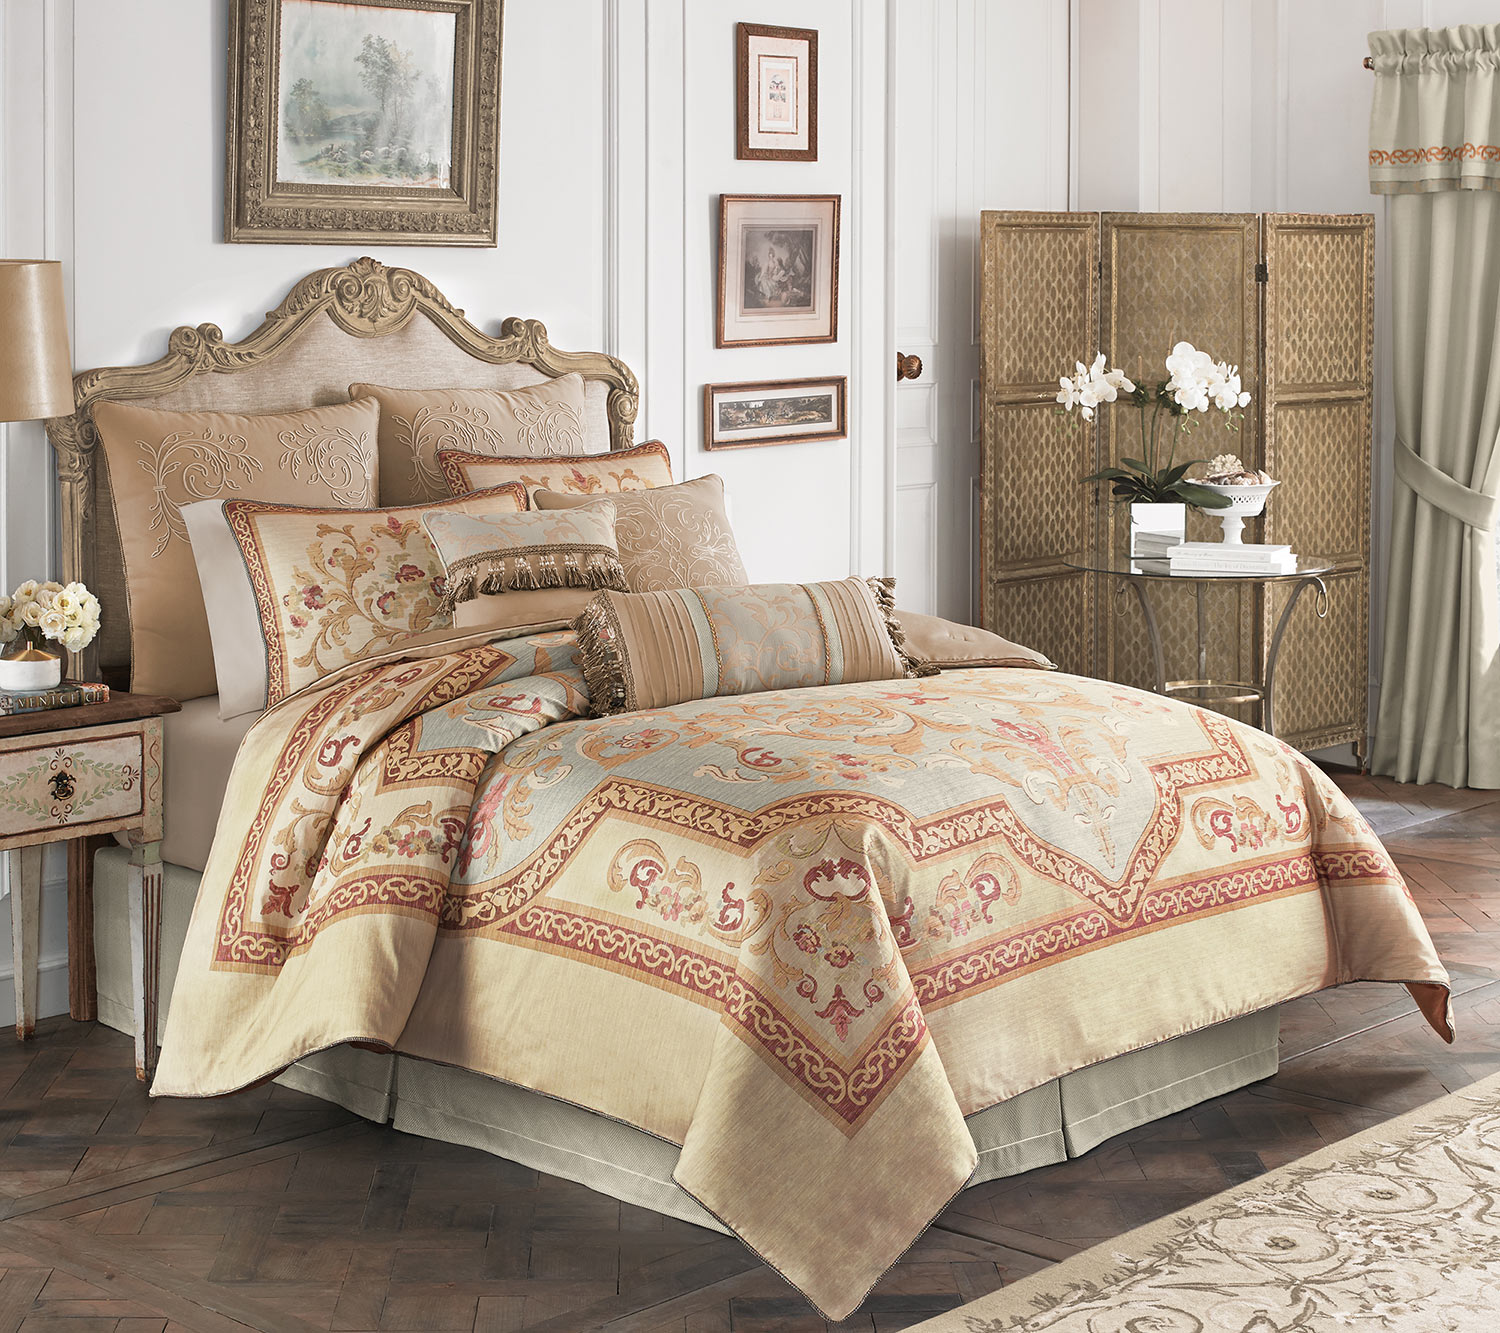 Lorraine By Croscill Home Fashions Beddingsuperstore Com